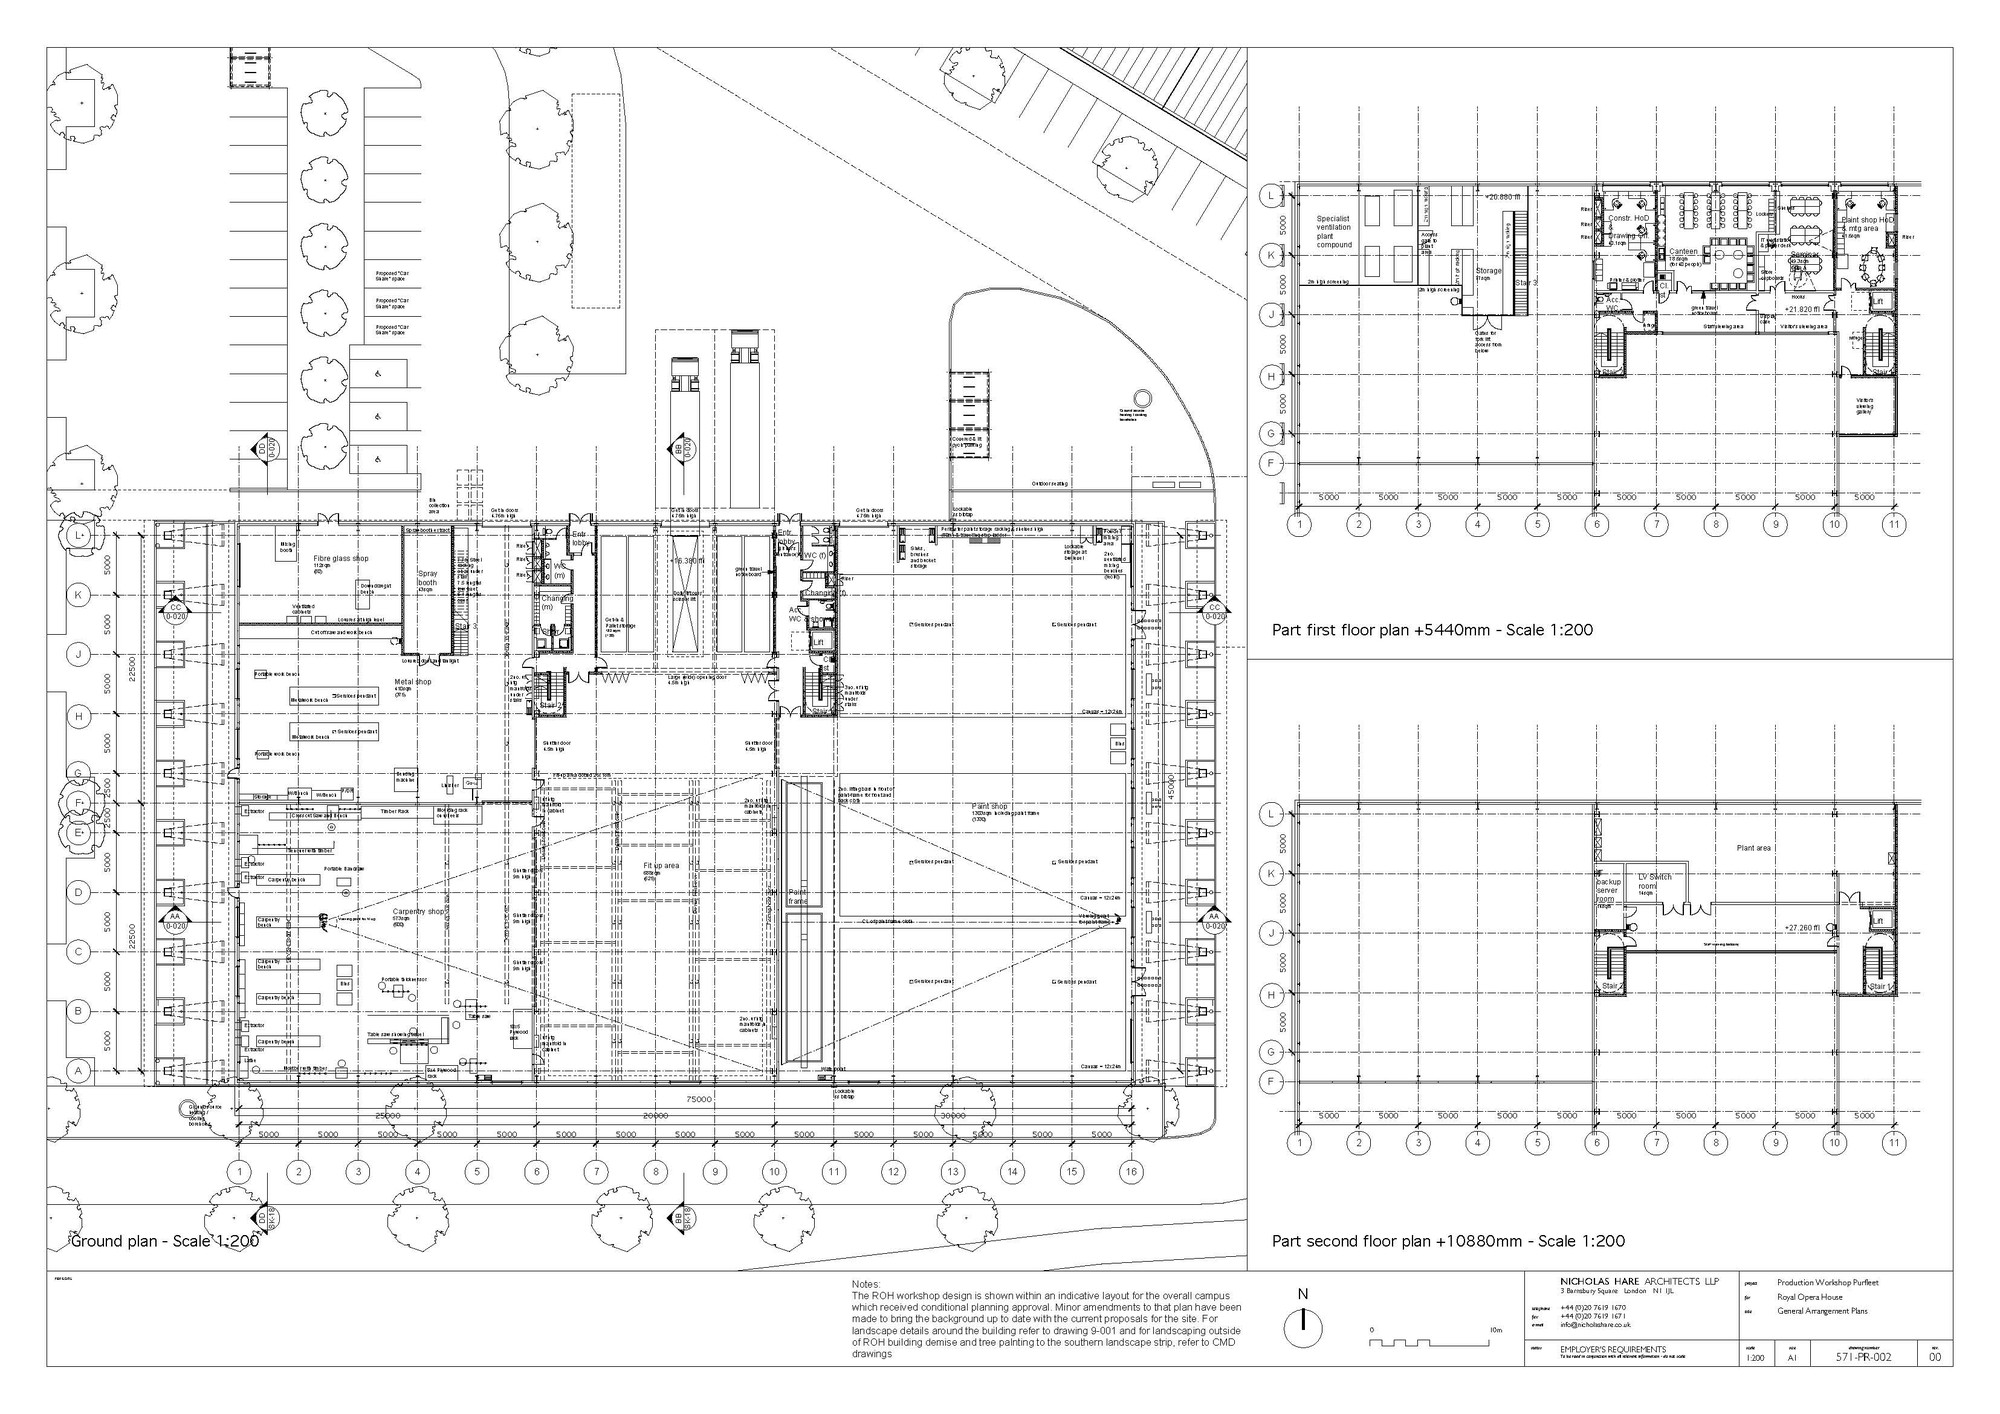 Royal opera house layout